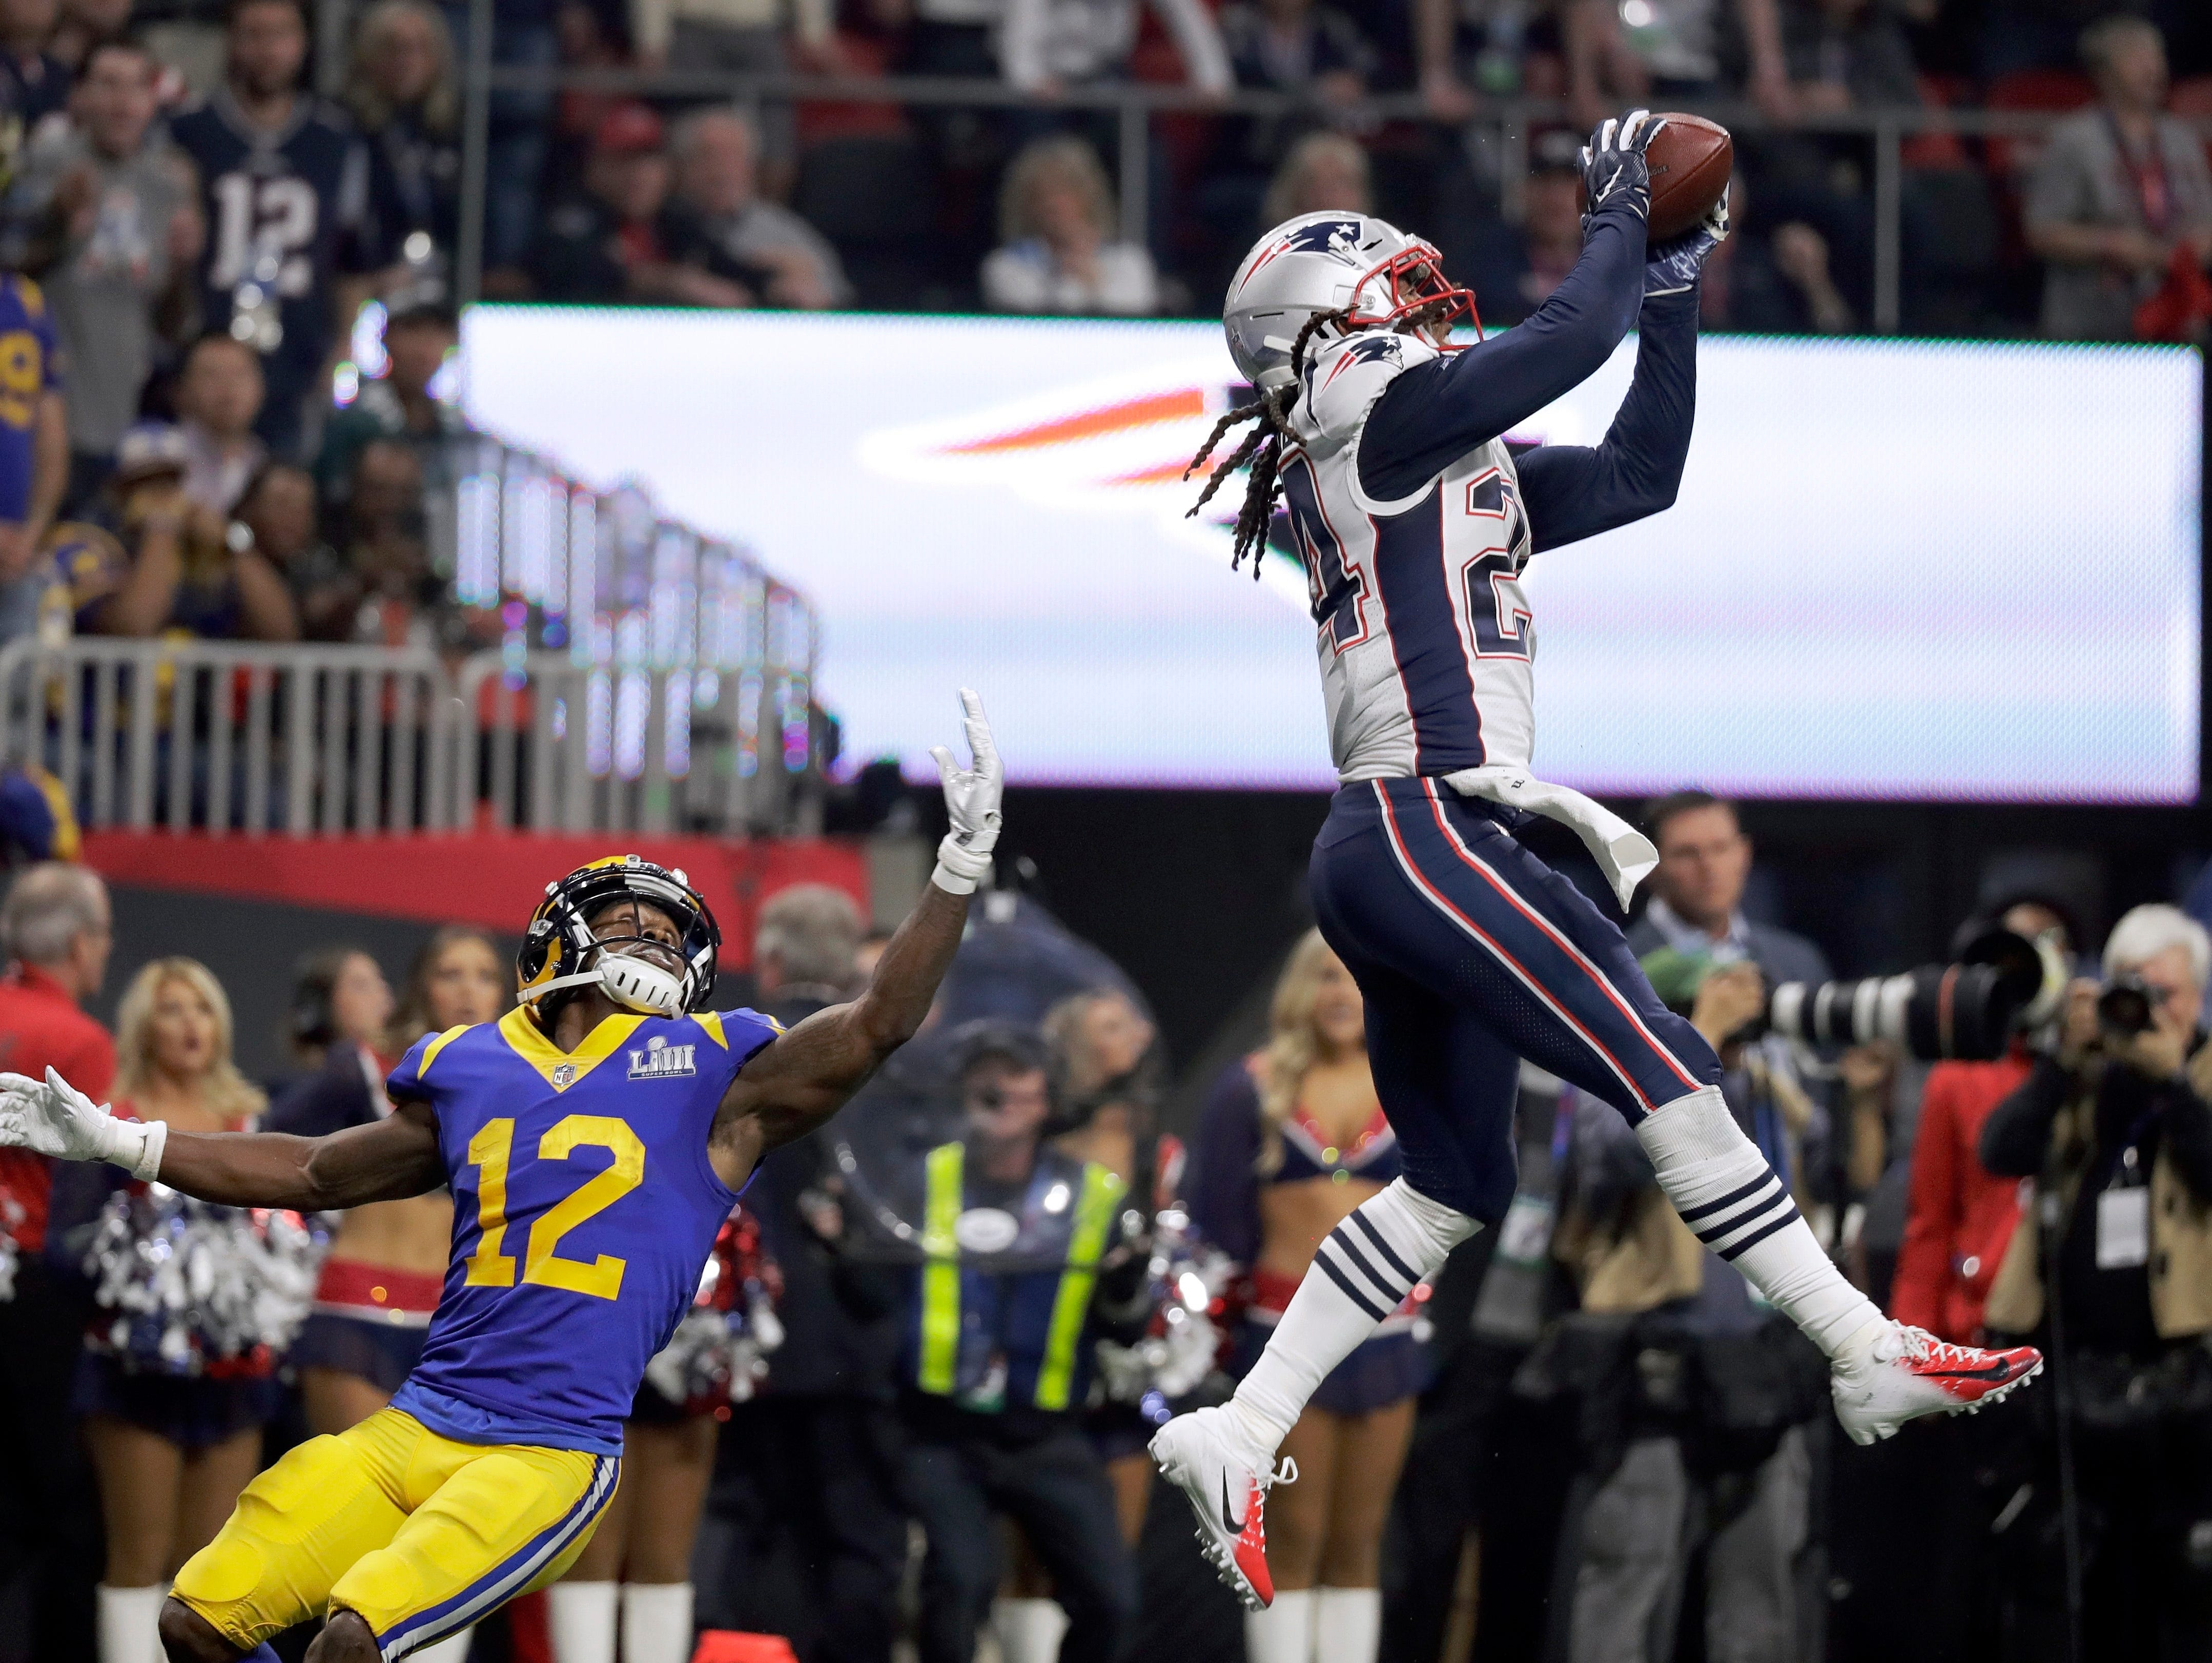 New England Patriots' Stephon Gilmore, right, intercepts a pass intended for Los Angeles Rams' Brandin Cooks (12) during the second half.